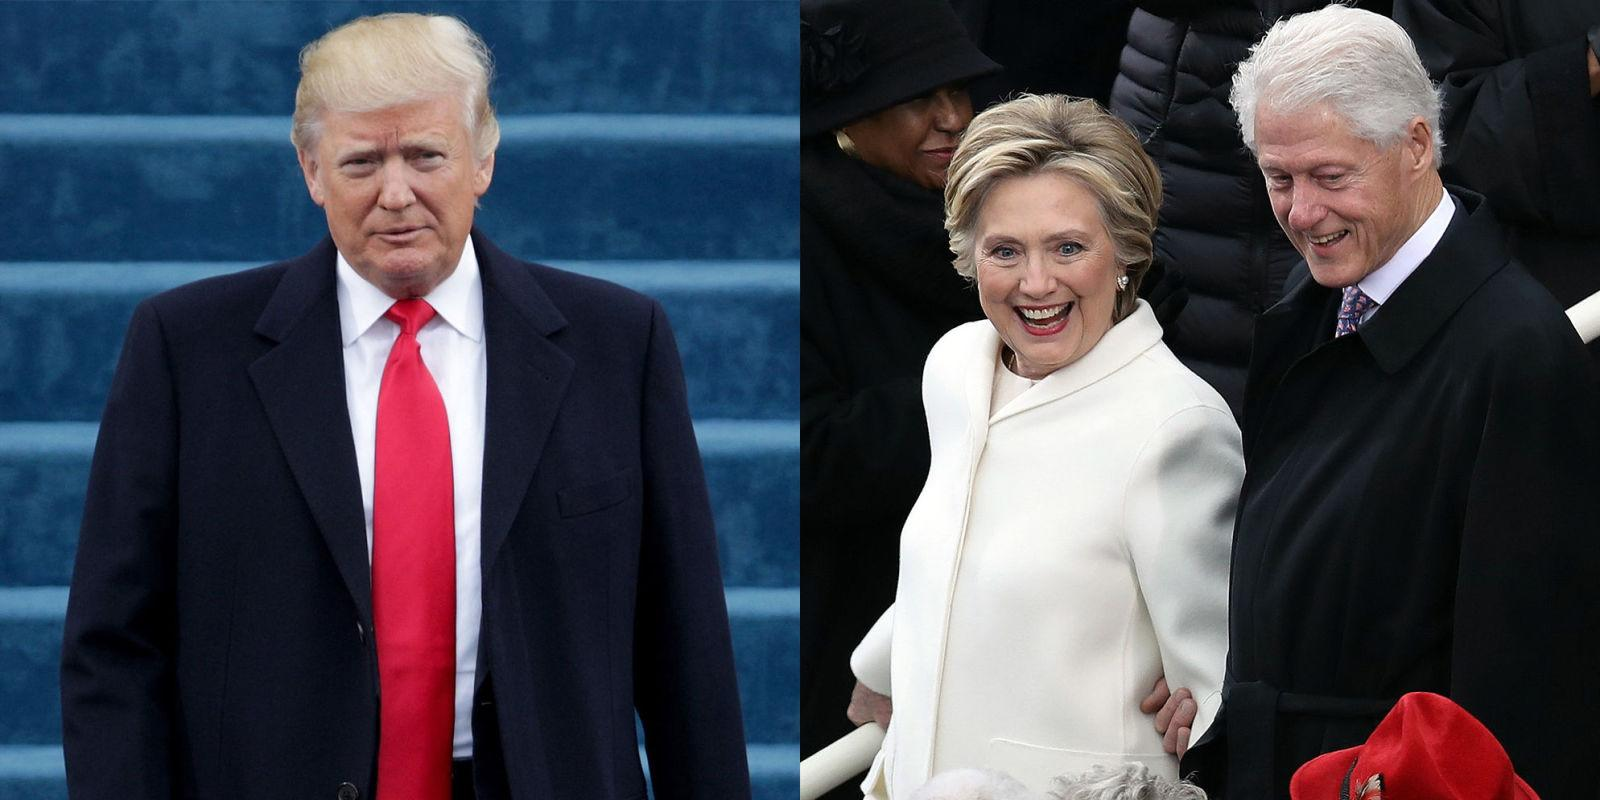 Donald Trump Led a Standing Ovation for Hillary and Bill Clinton